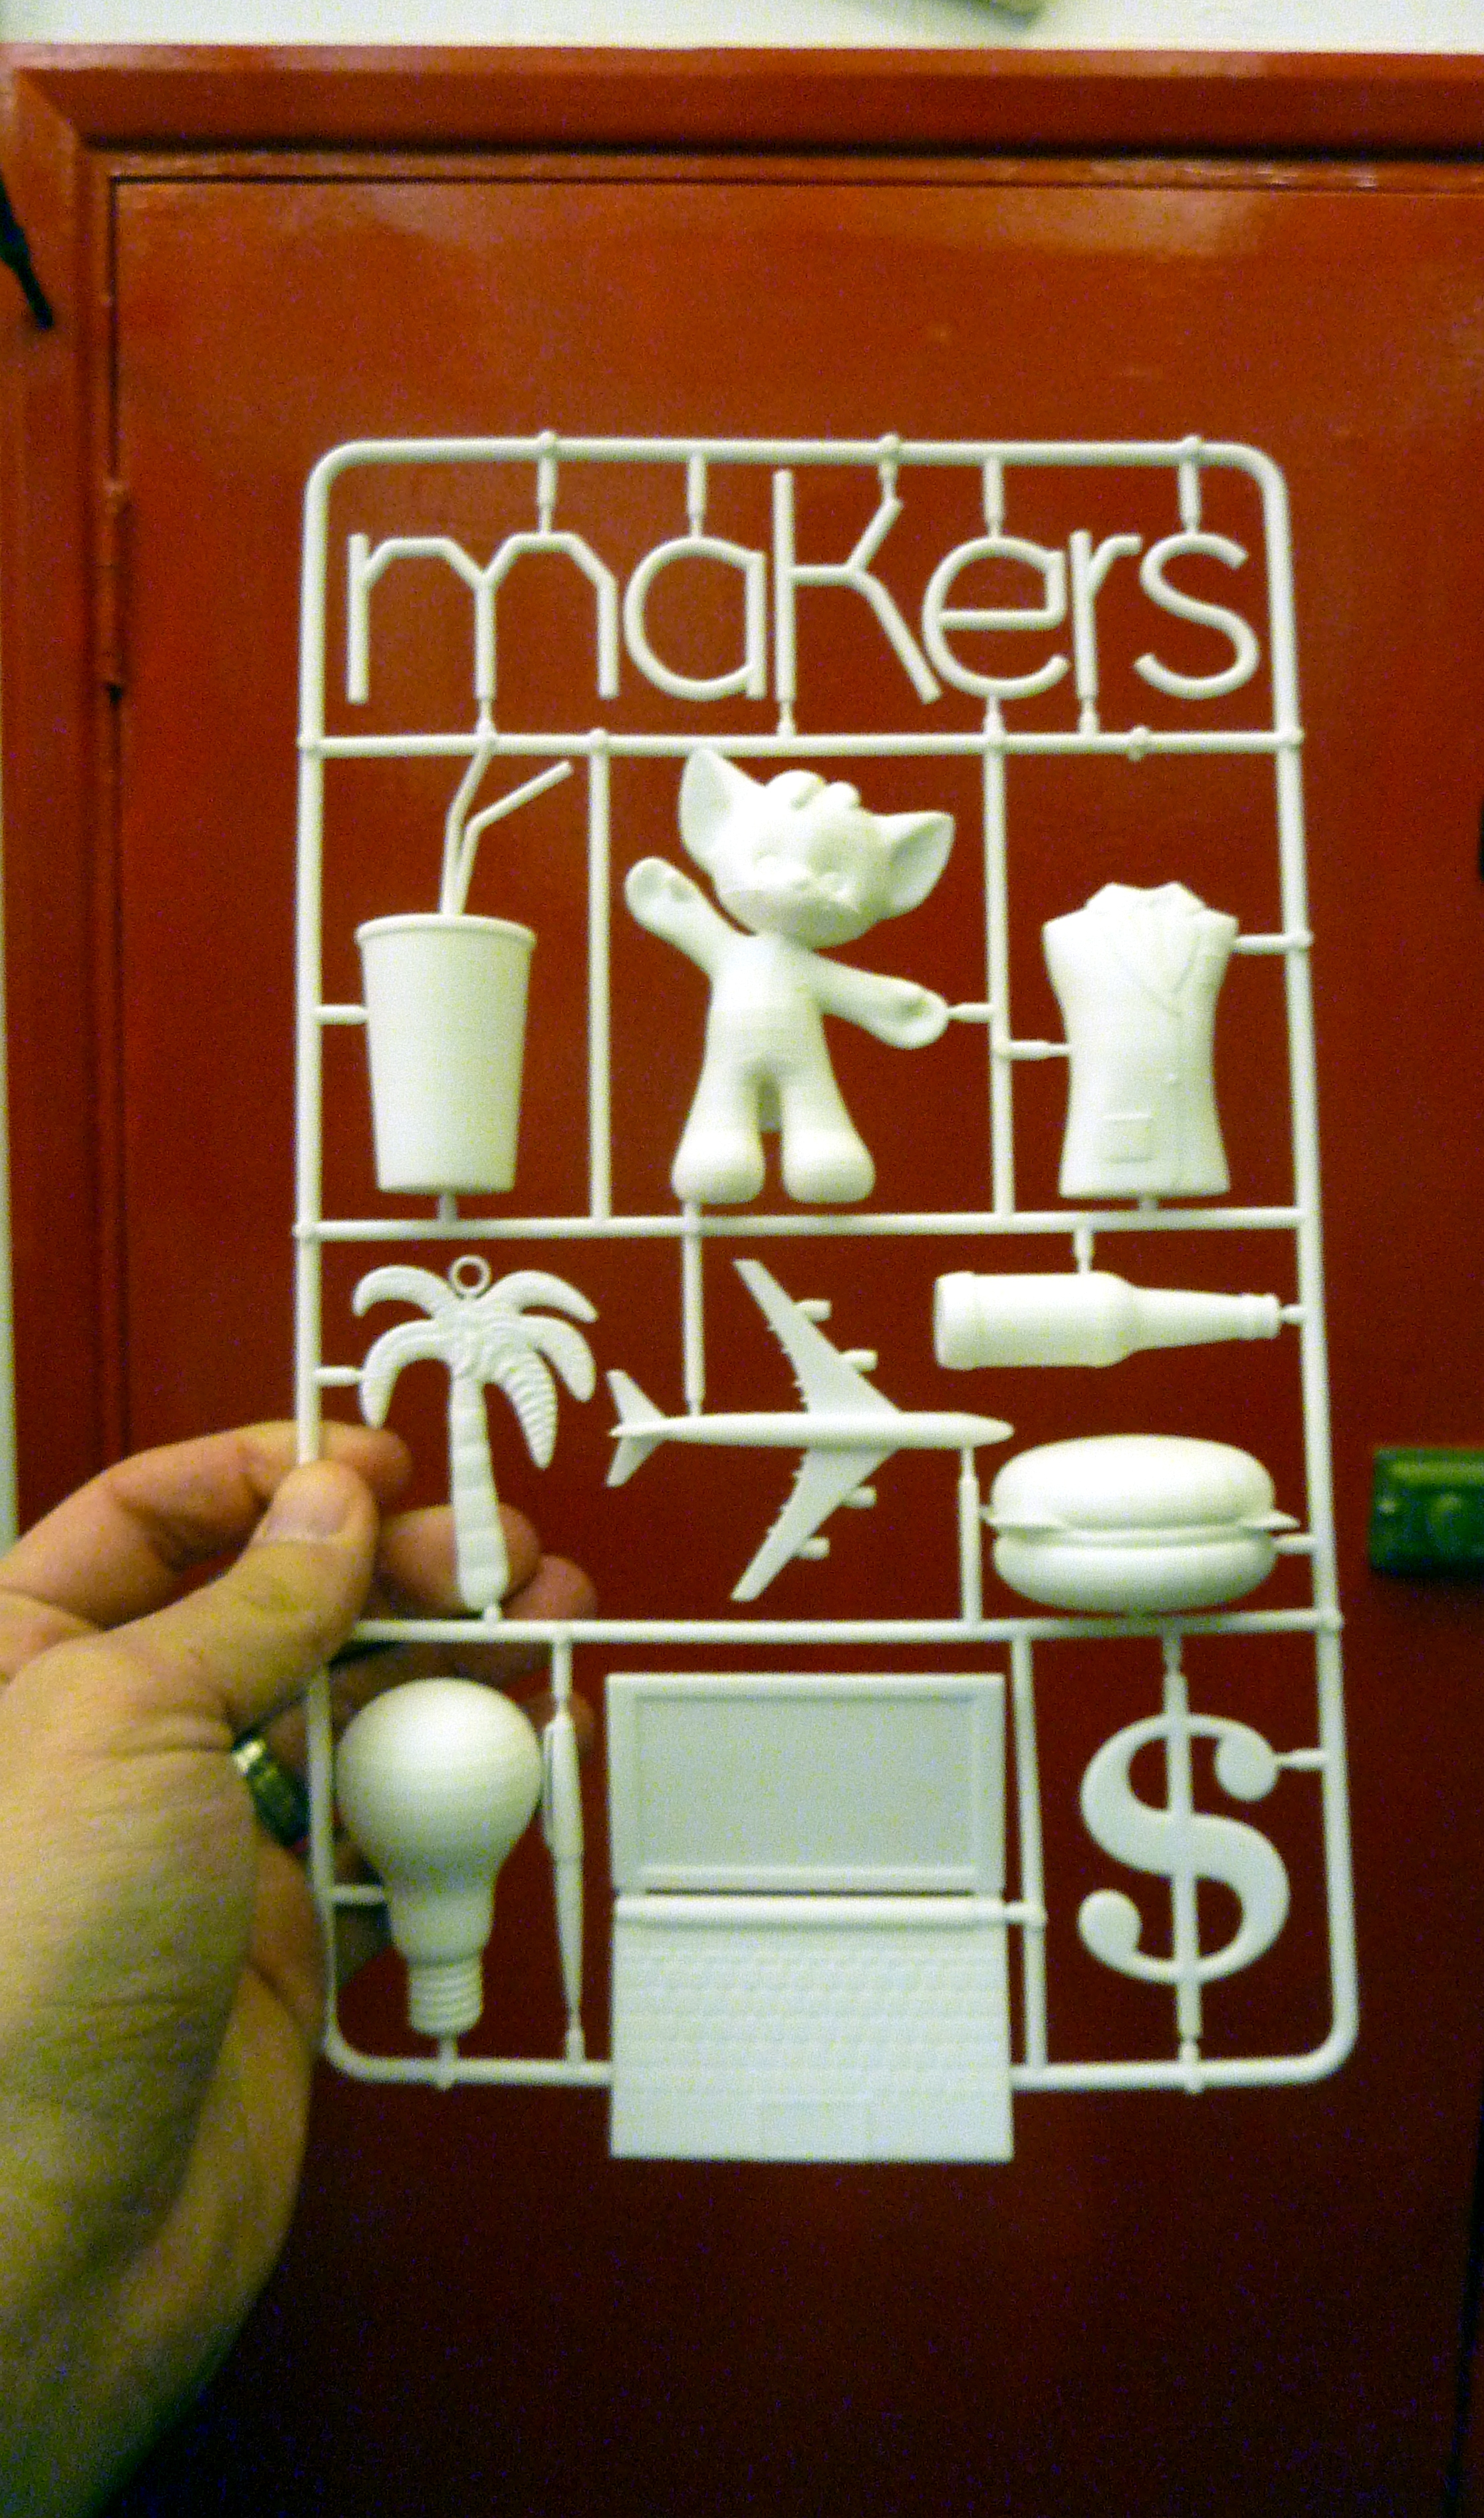 3D model of the UK HarperCollins cover for Makers (front) with my hand, courtesy of Shapeways, the office, Clerkenwell, London, UK